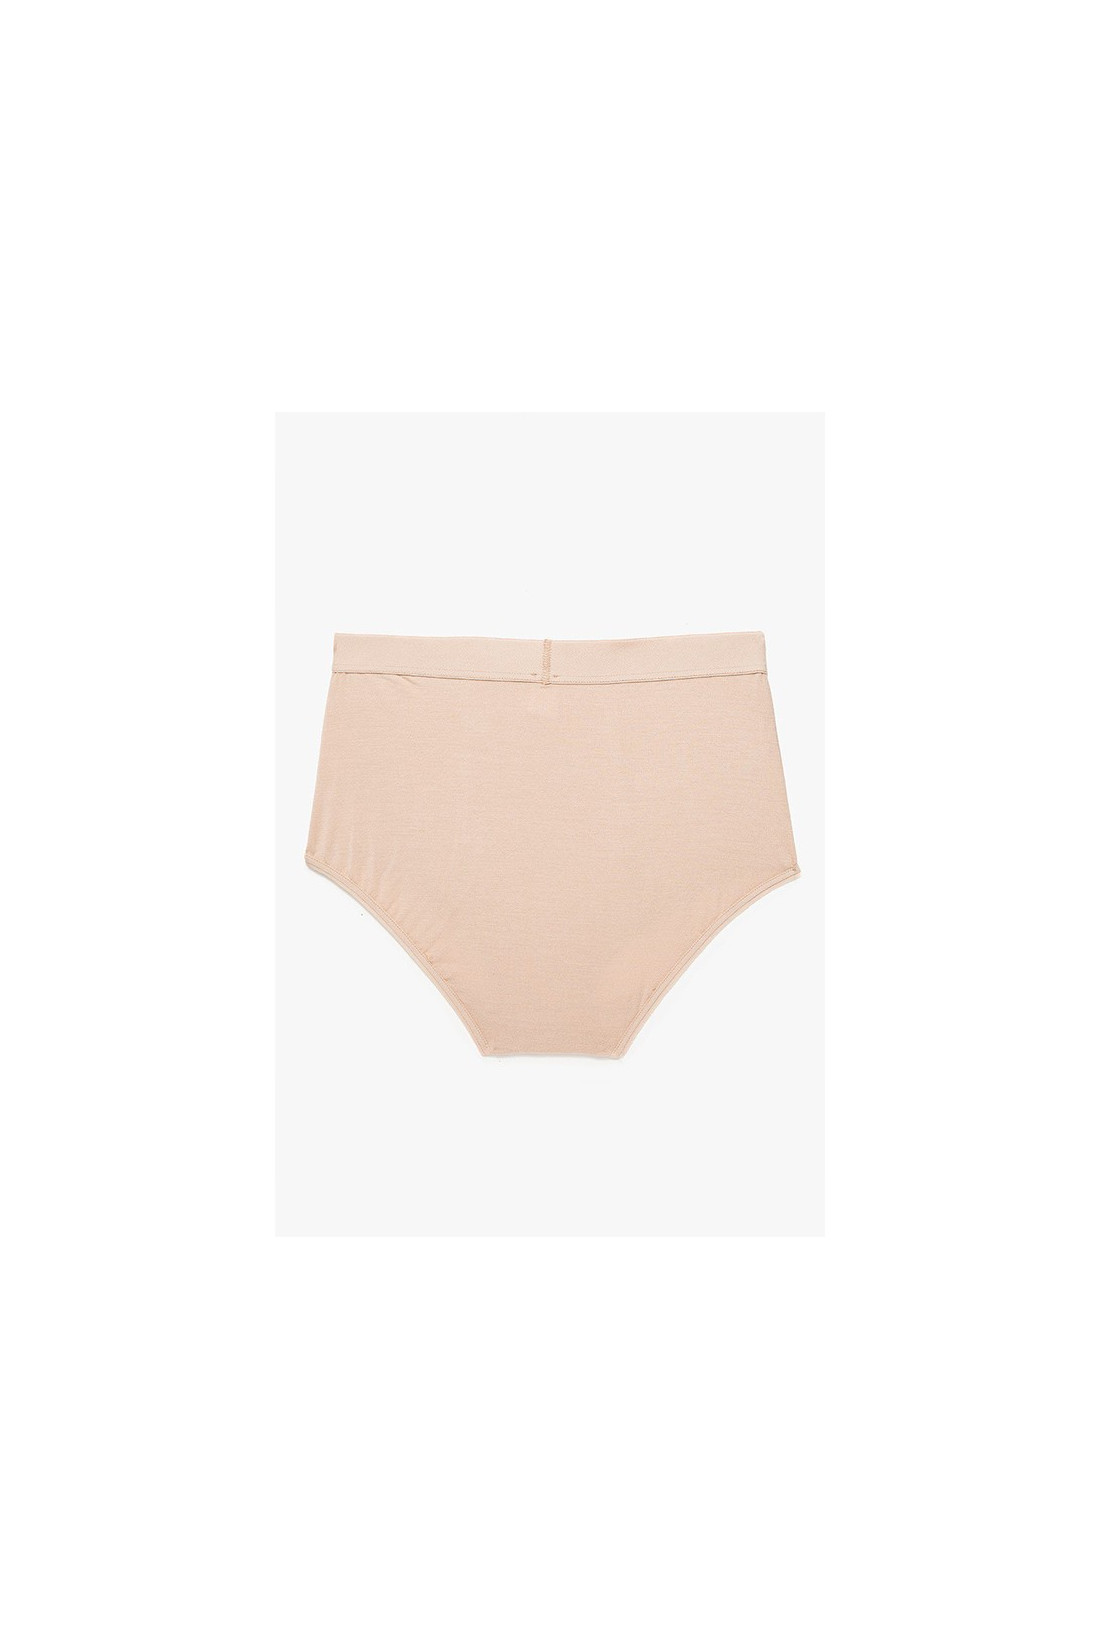 BASERANGE FOR WOMAN / Boypants Nude